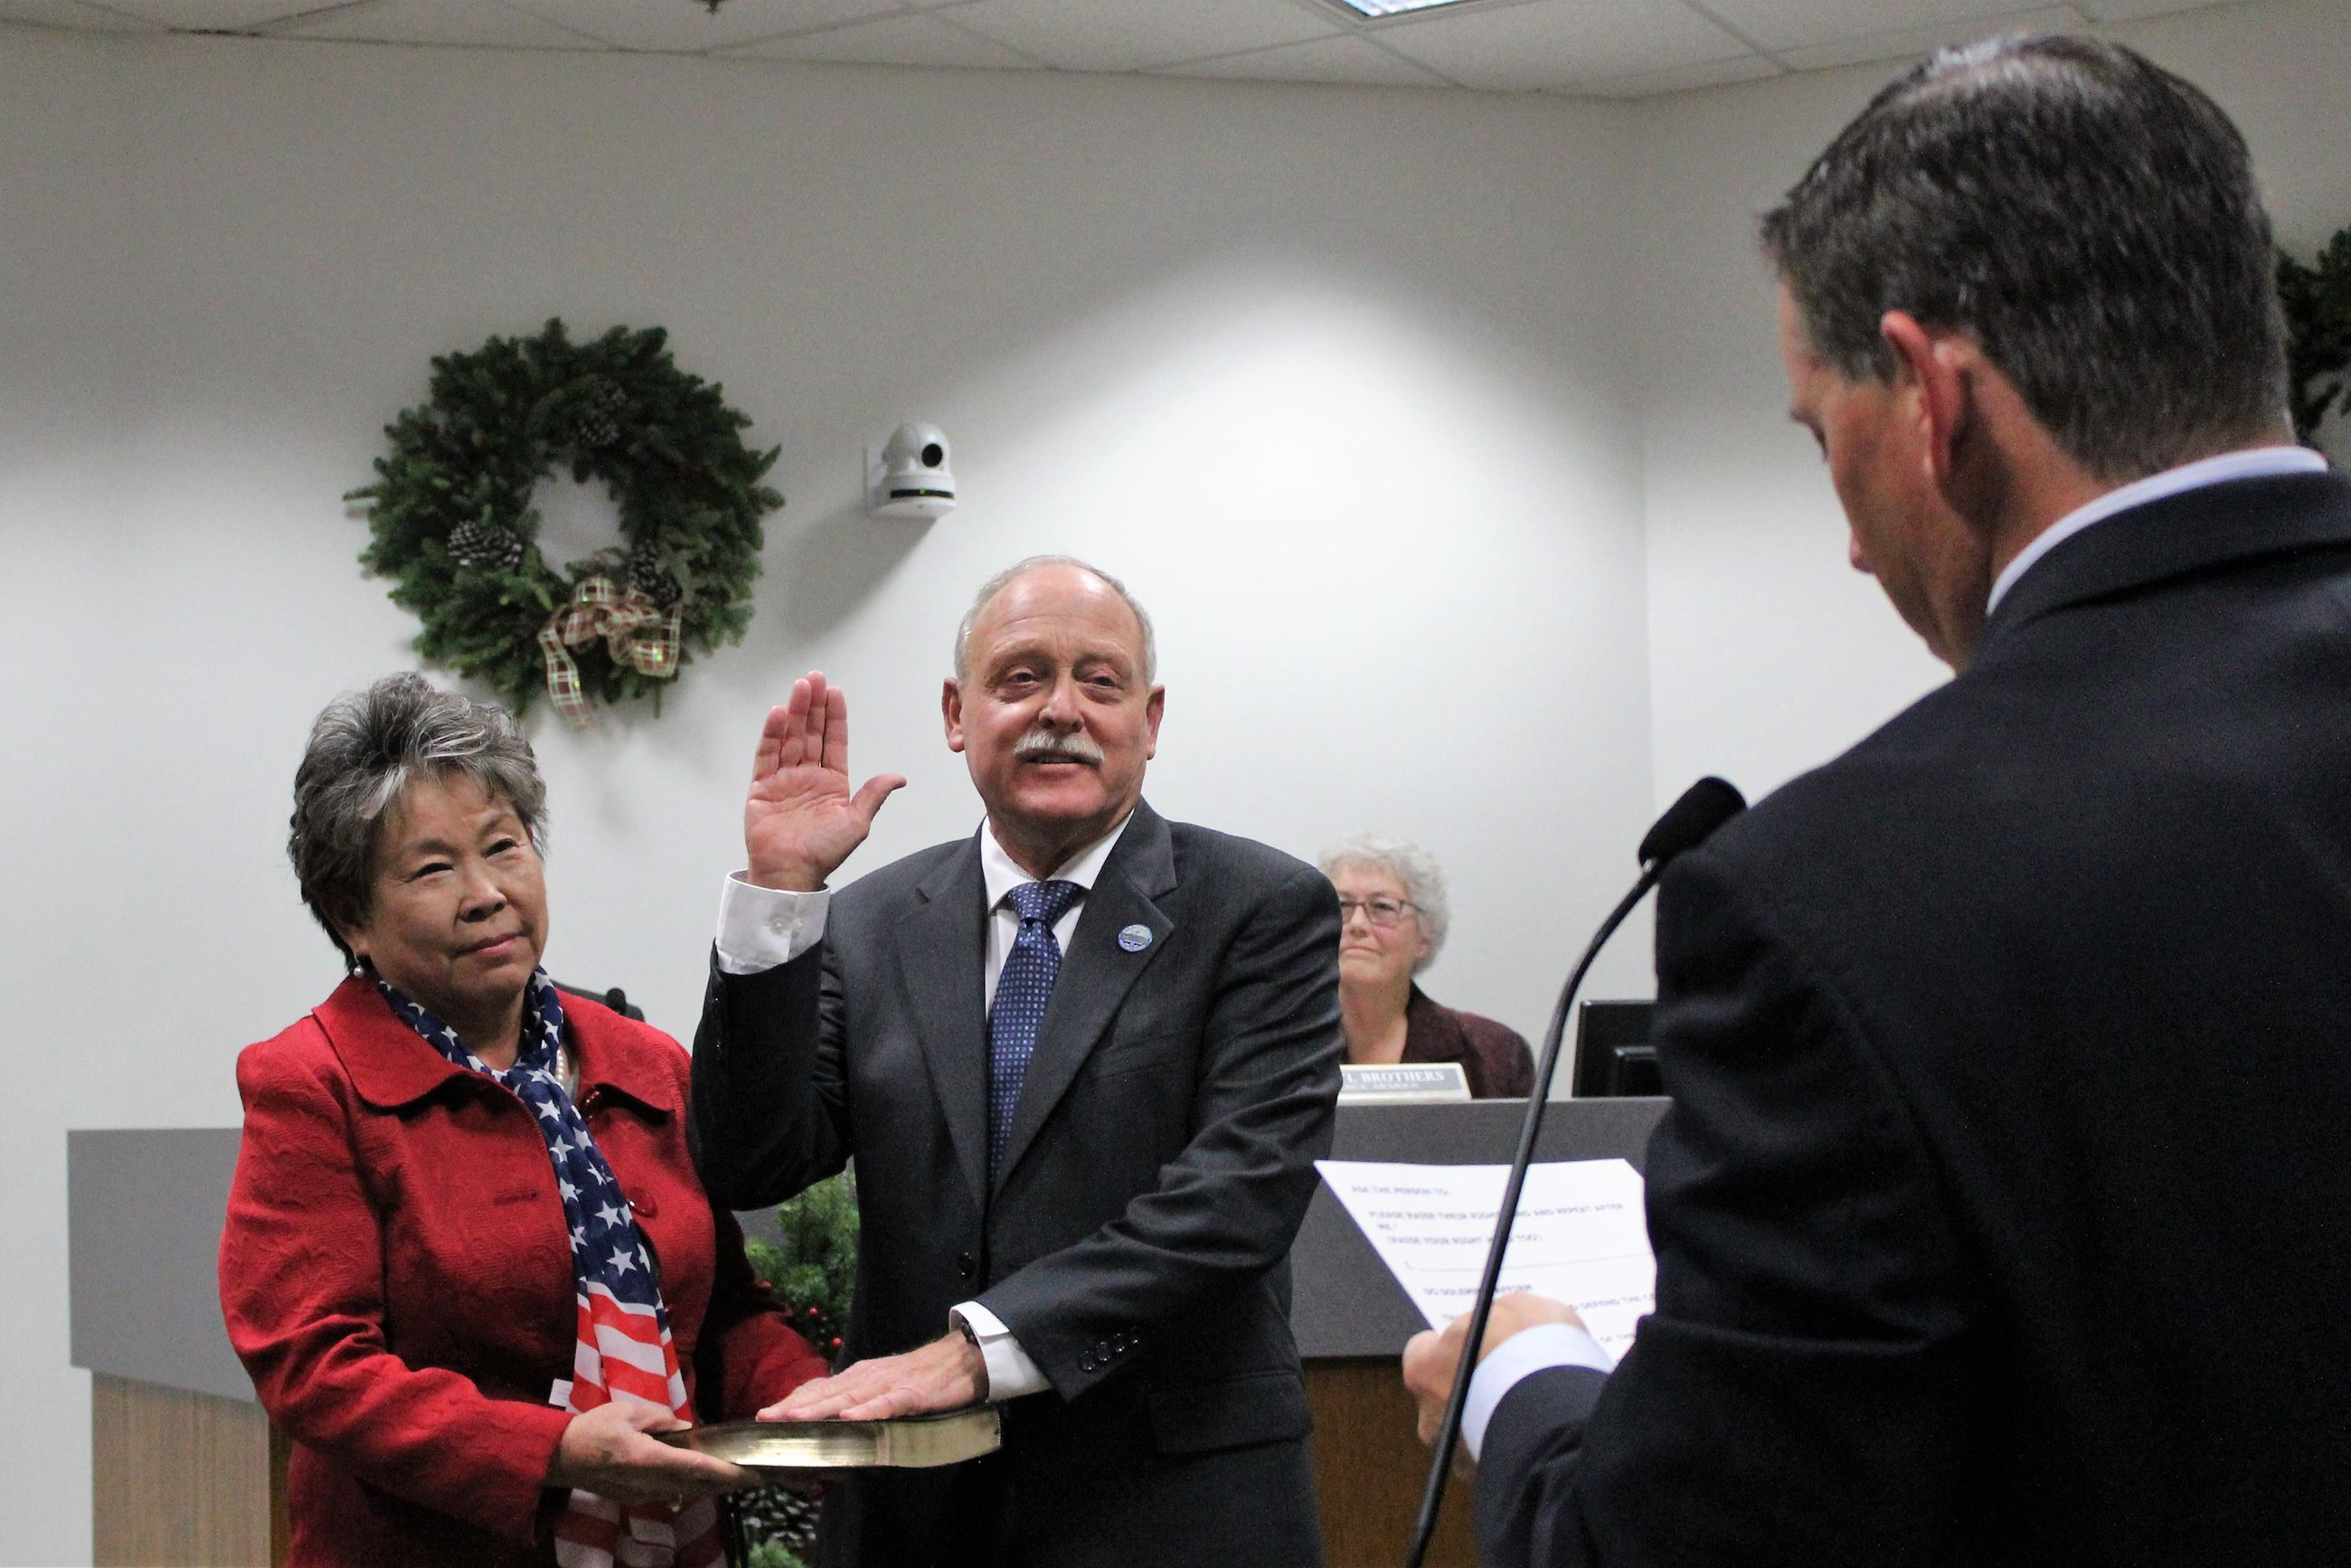 Mayor Steve Nagel Oath to Office (2018)